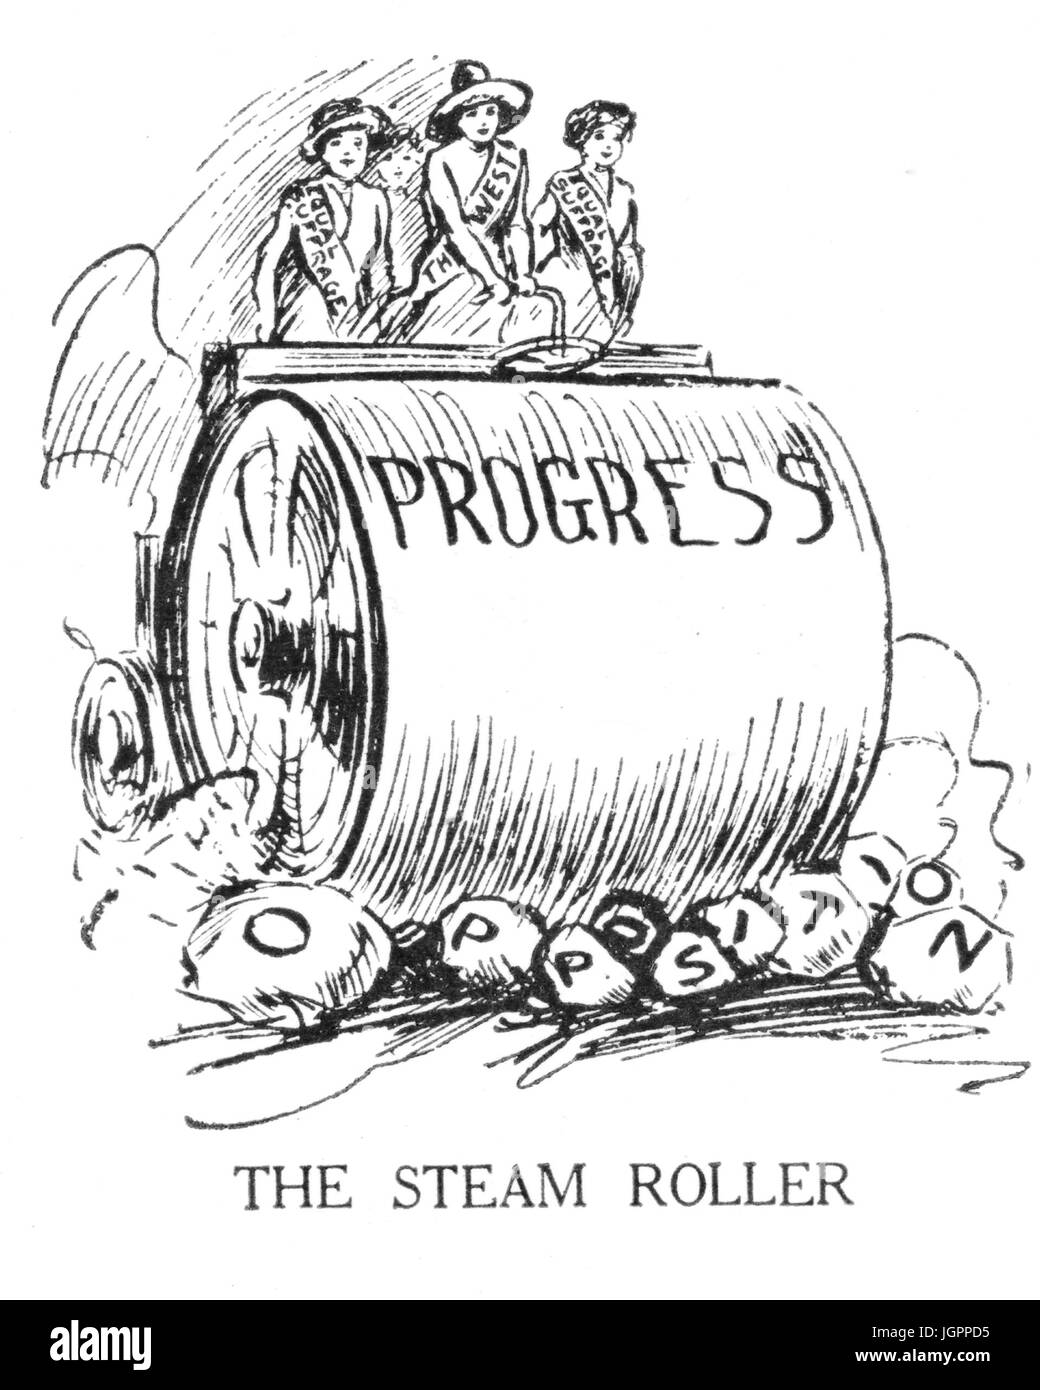 THE STEAM ROLLER American suffragettes on a steam roller crushing the opposition in a cartoon from 'Judge' - Stock Image